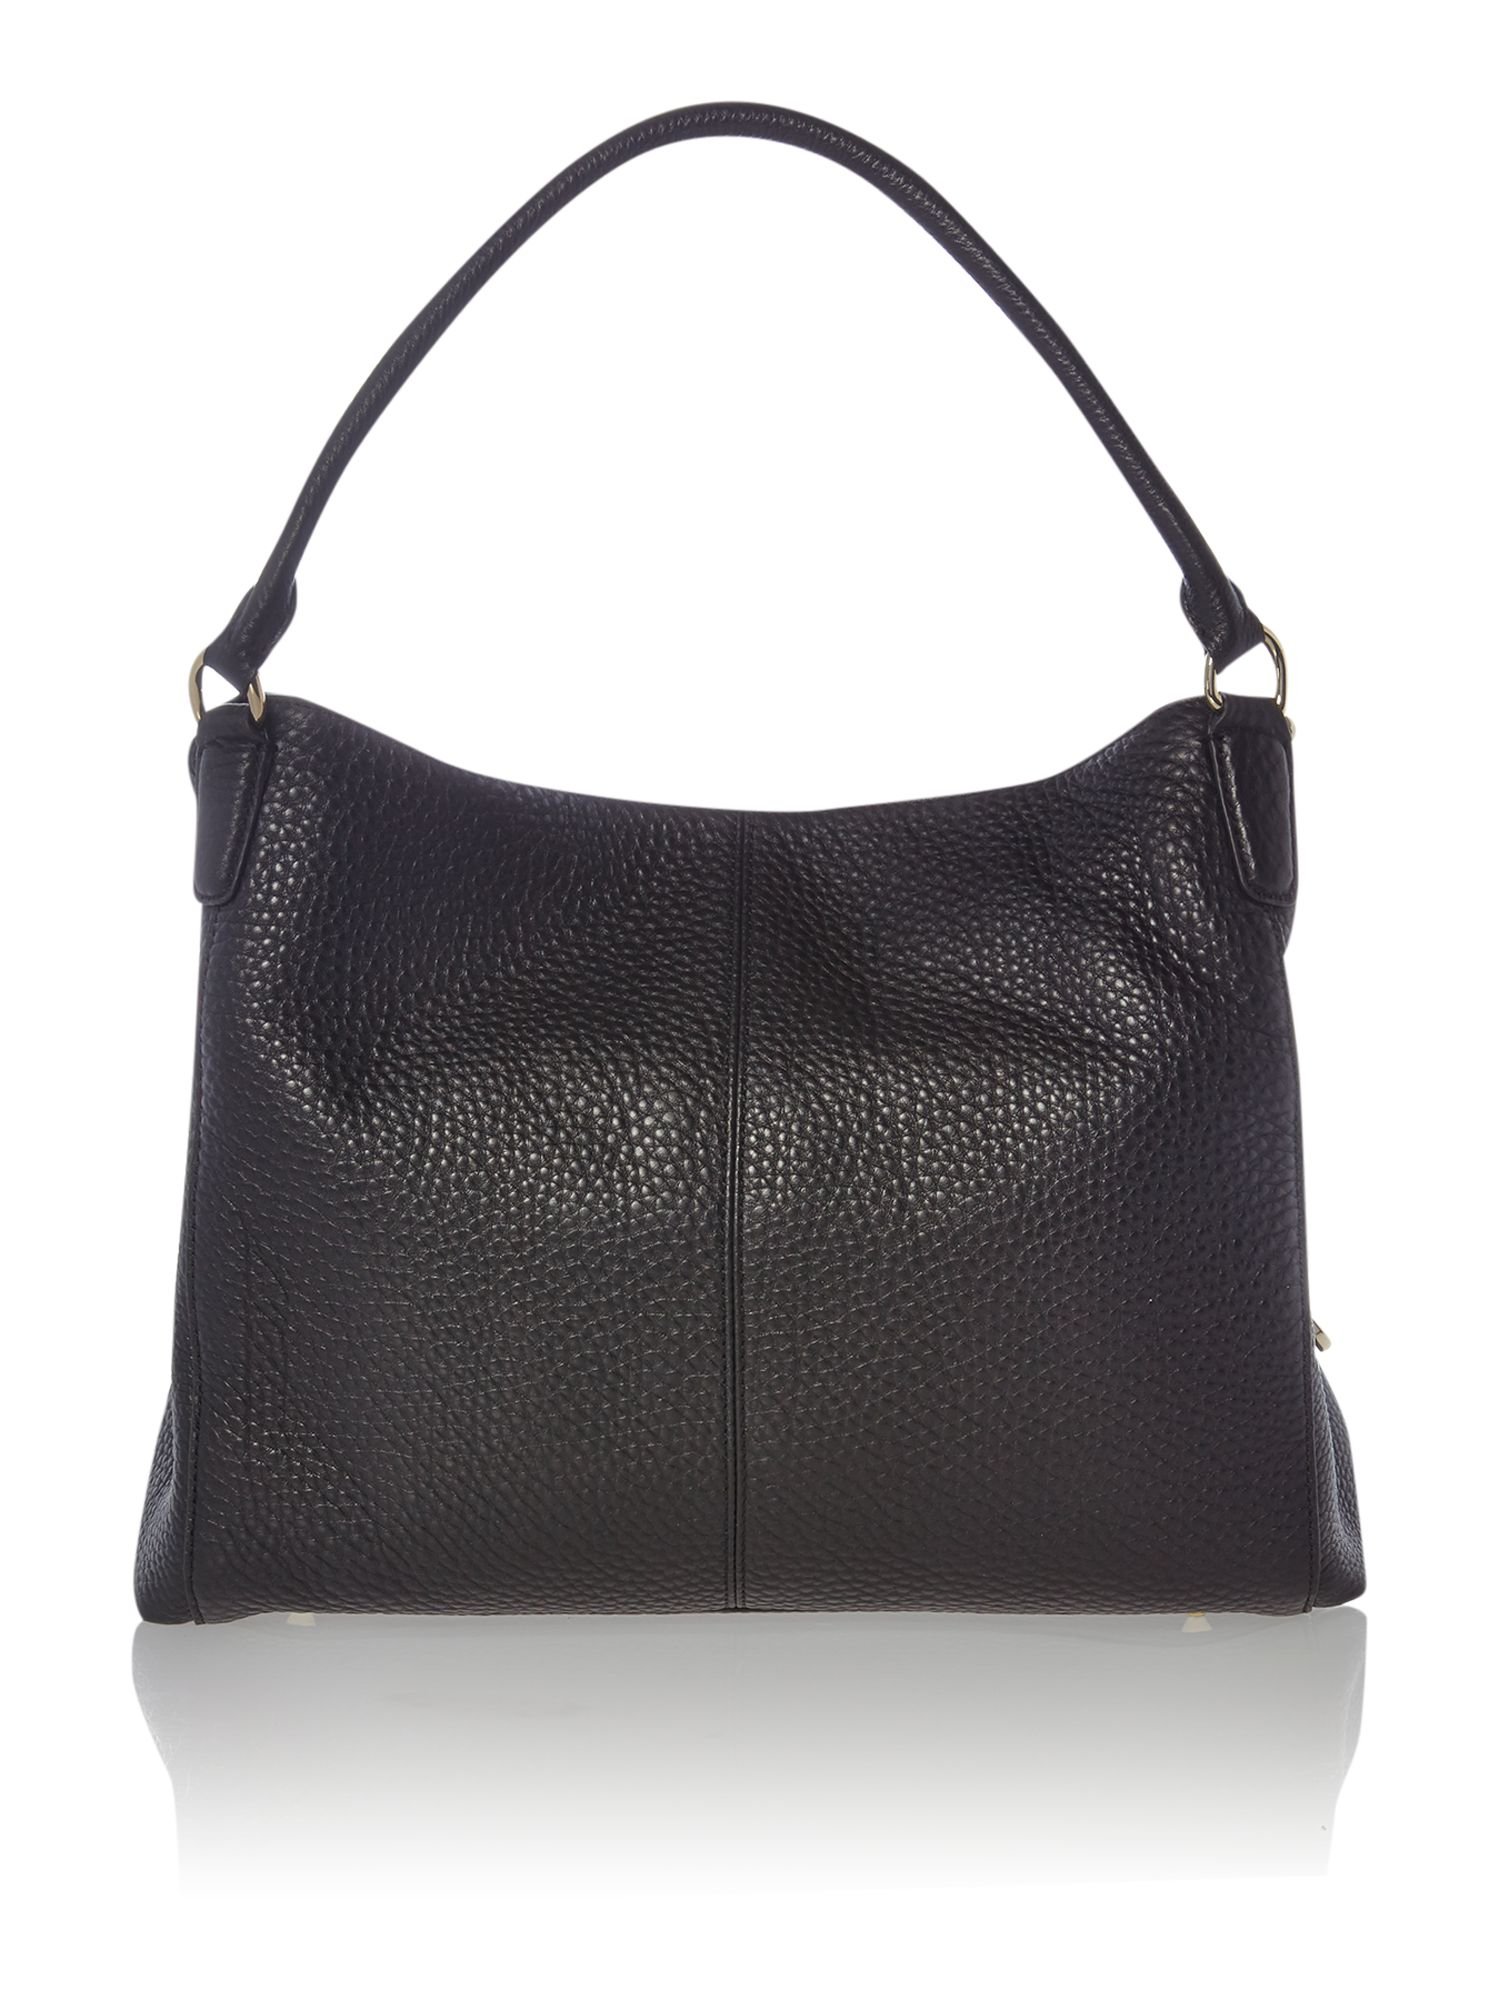 Tribeca black large hobo bag